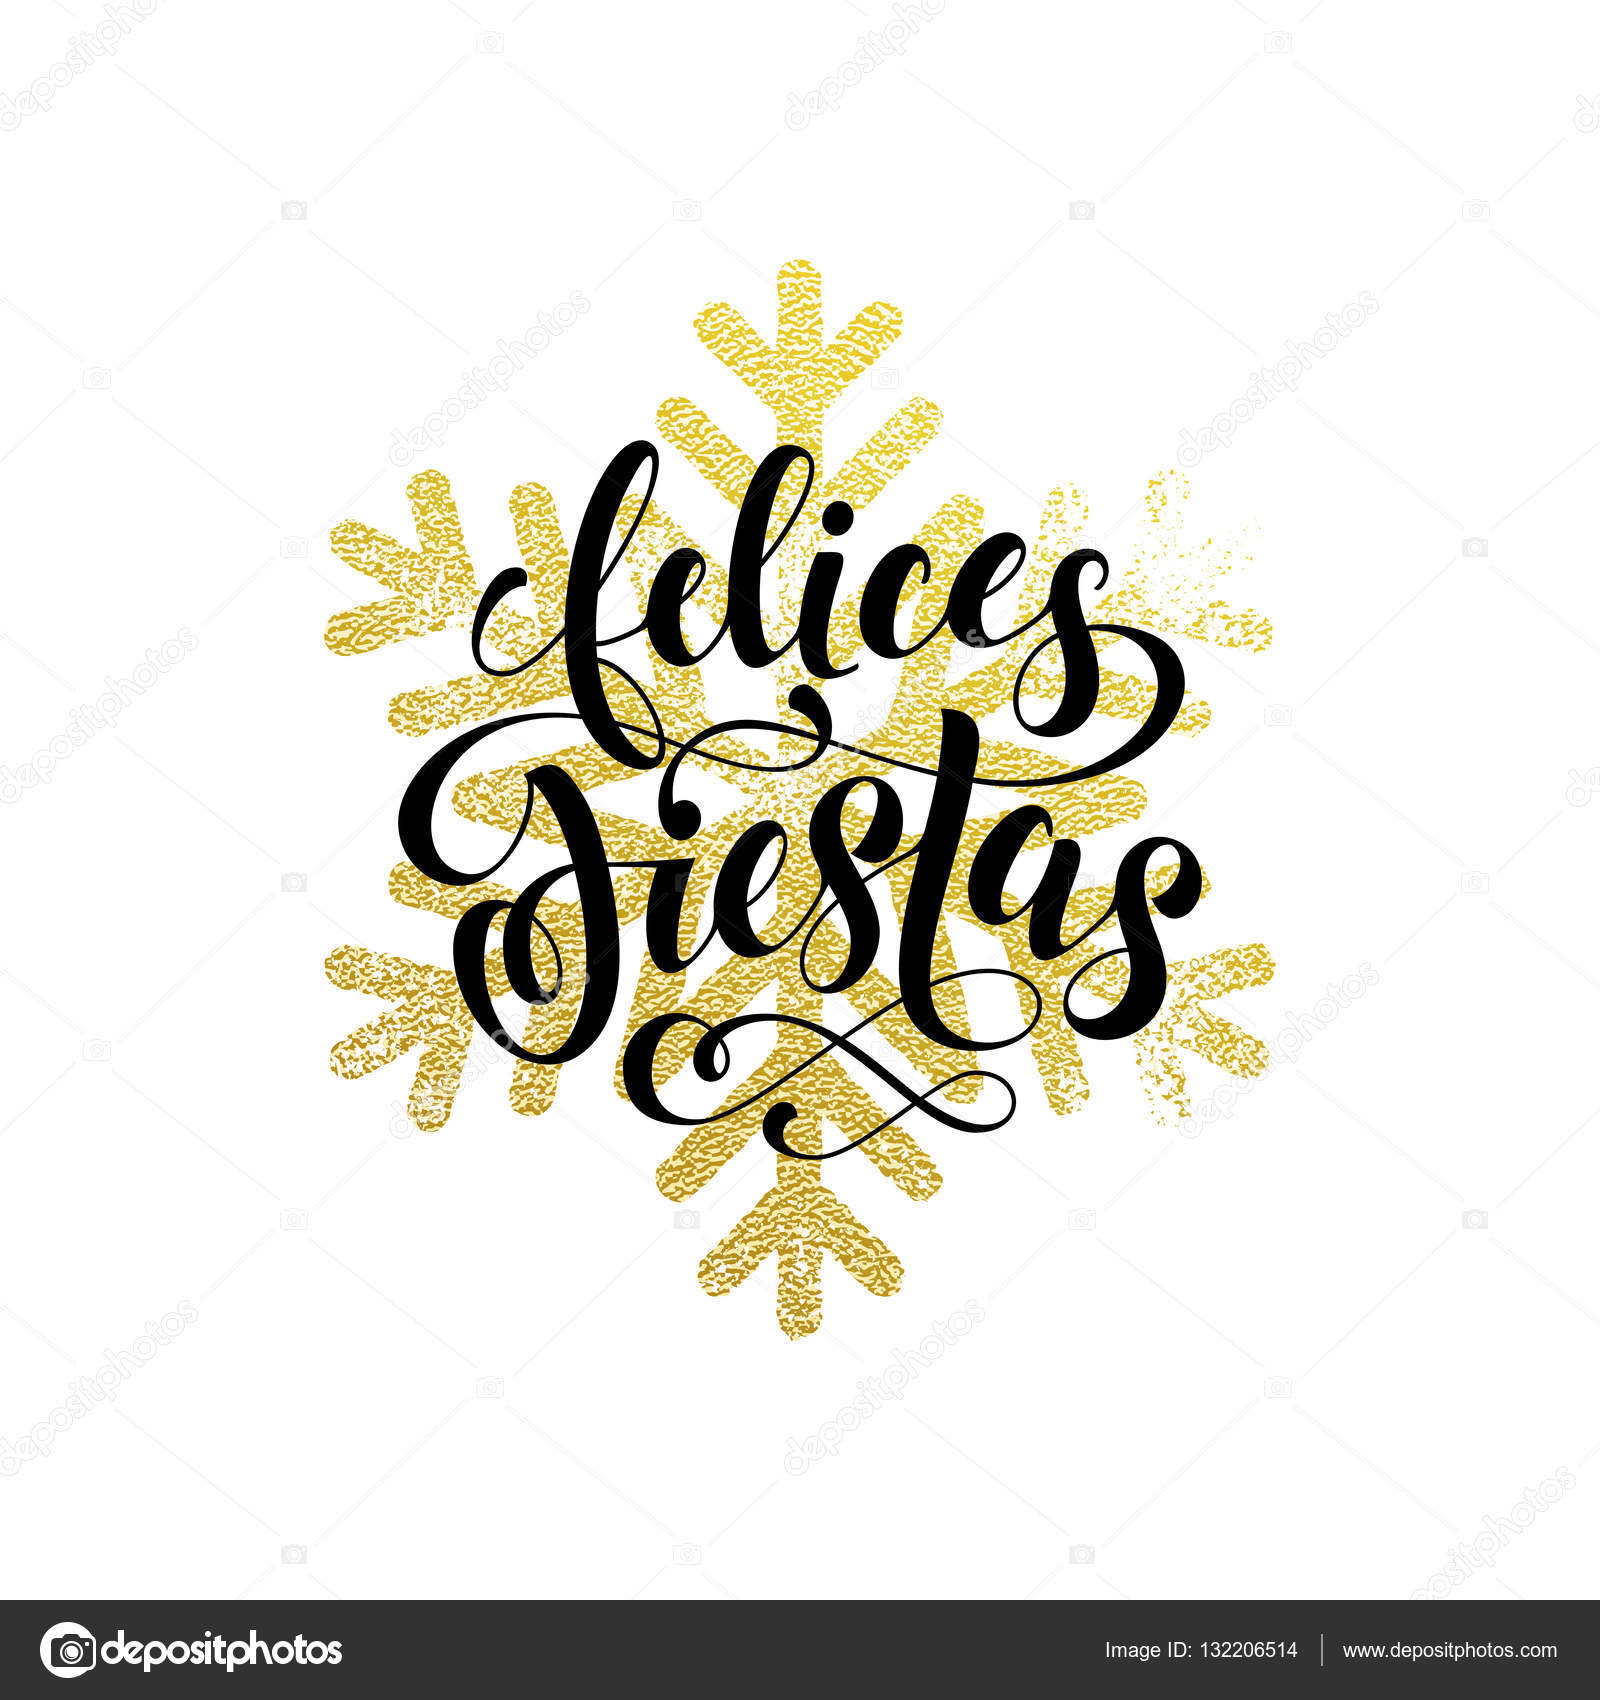 Winter holiday greeting card felices fiestas gold spanish winter holiday greeting card felices fiestas gold spanish lettering stock vector 132206514 kristyandbryce Images